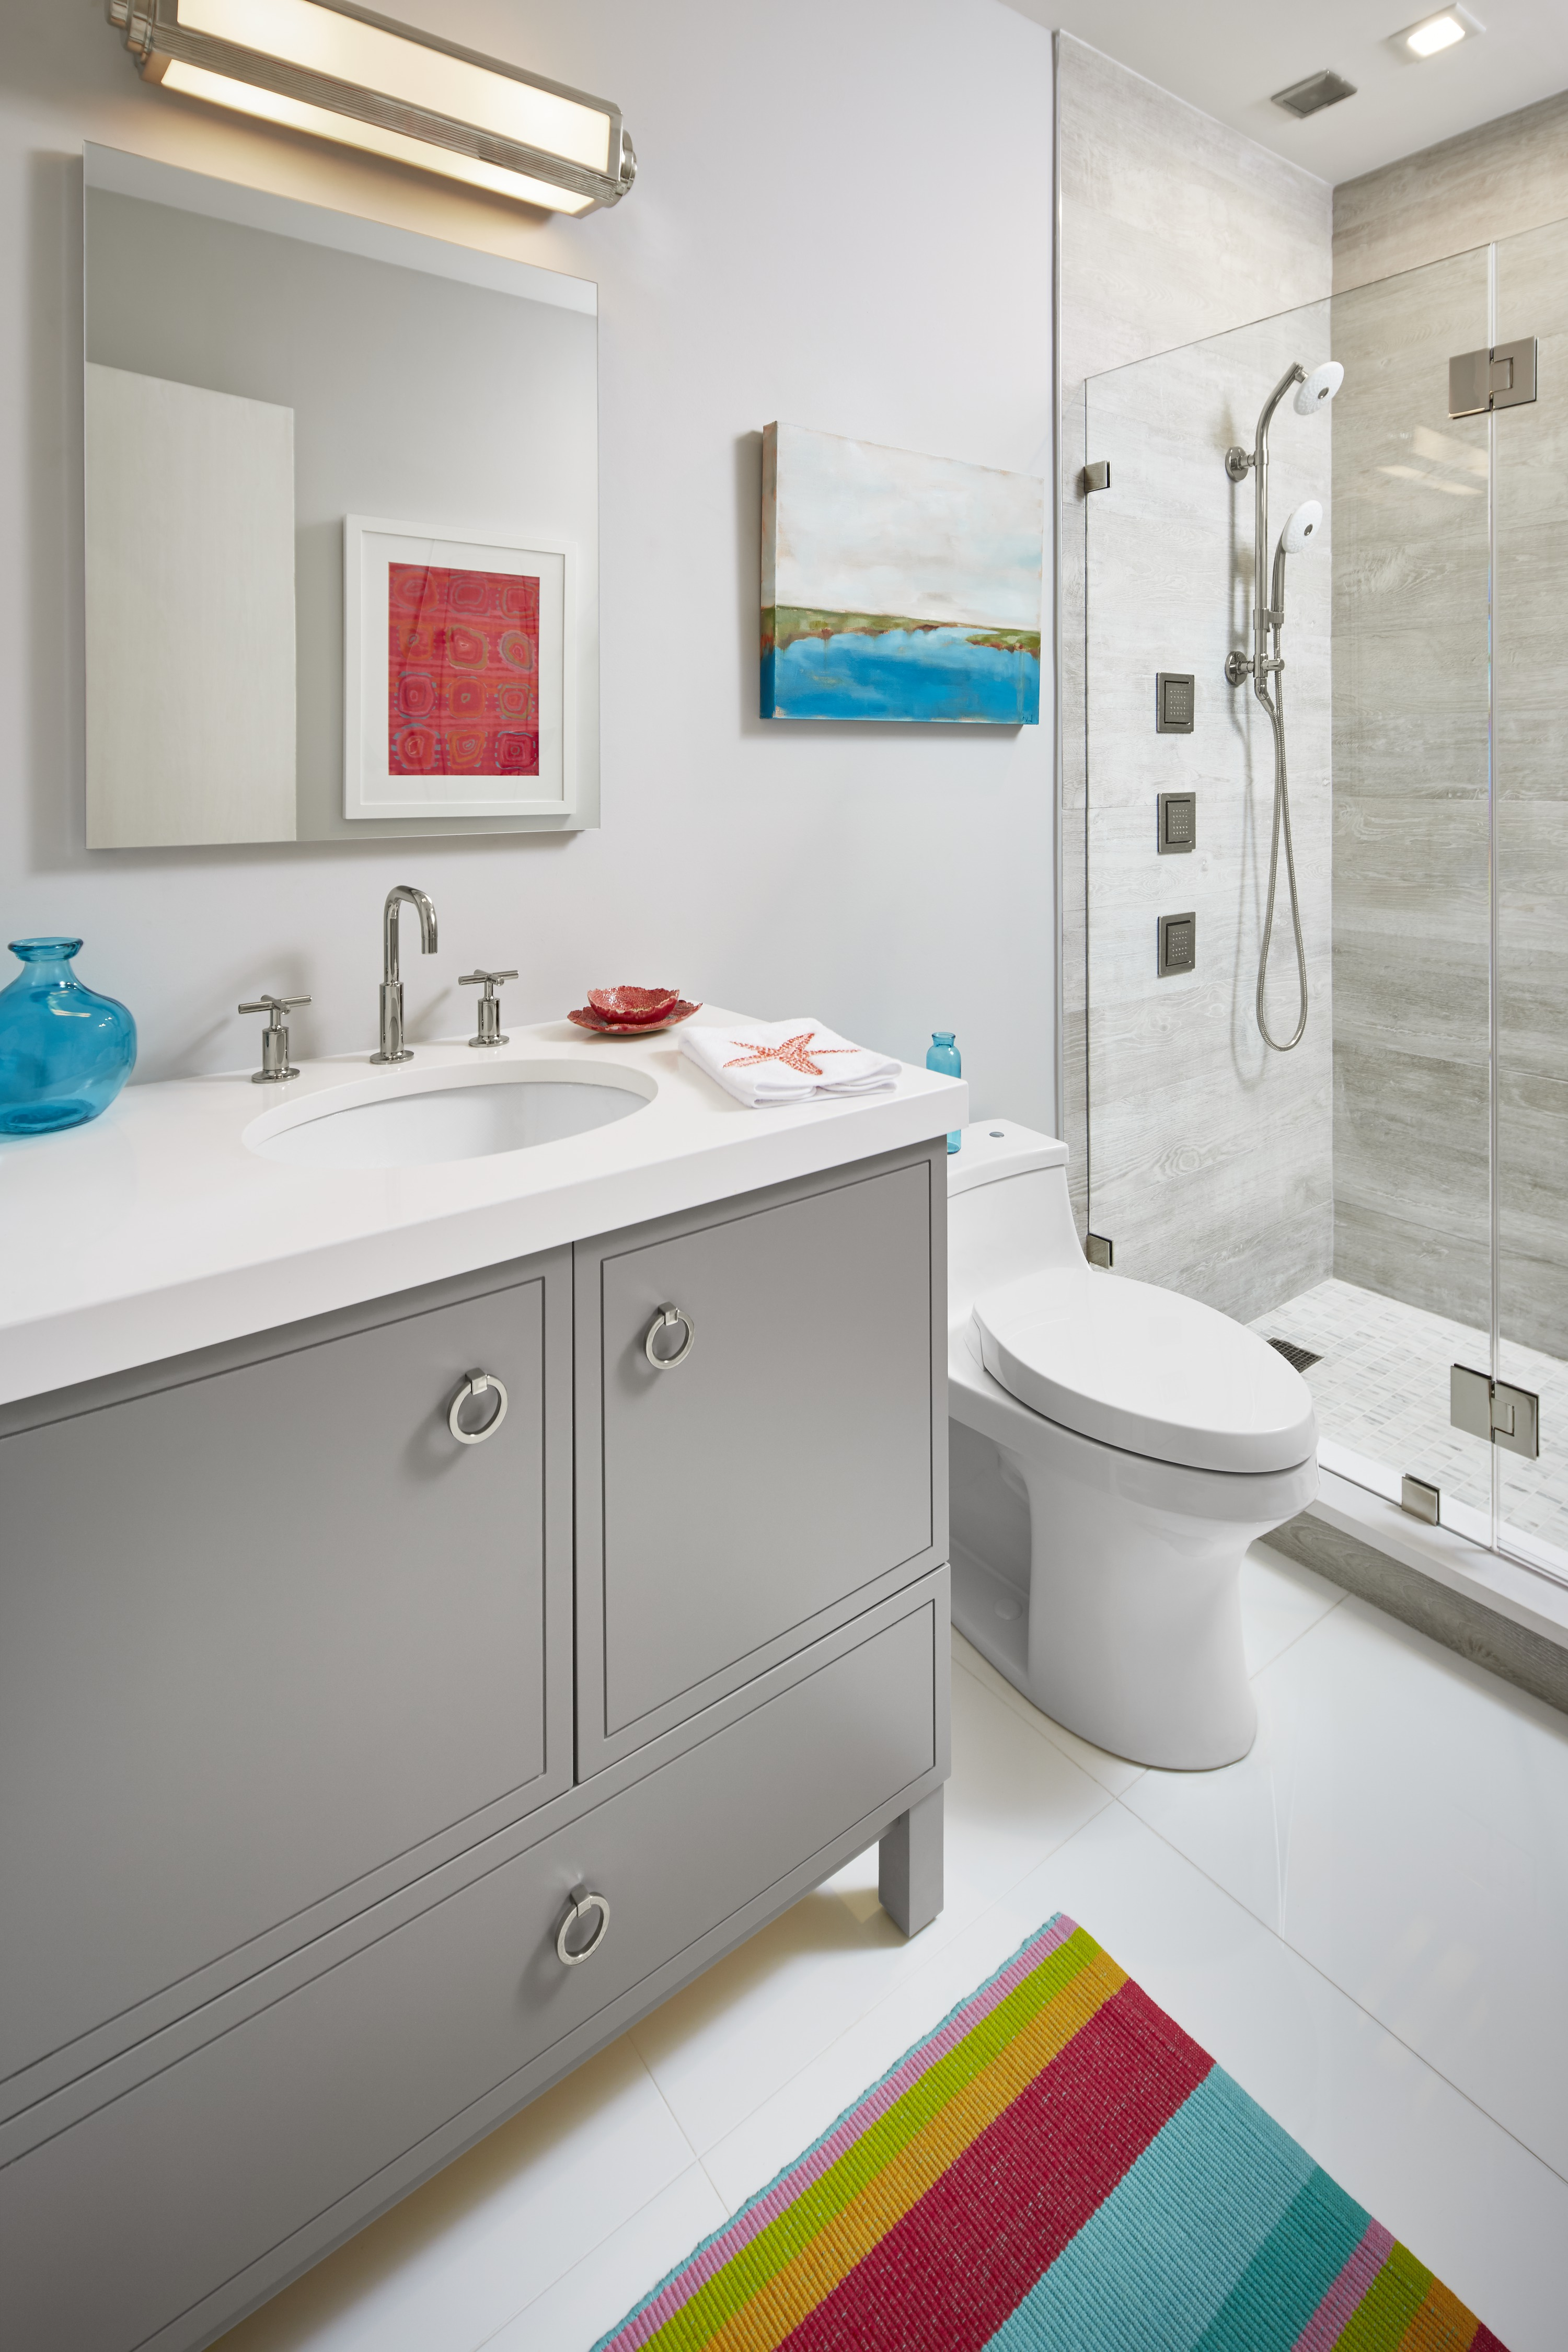 Purist Faucet     Jacquard Vanity     San Souci Touchless Toilet     Exhale Showerhead     Exhale Handshower     WaterTile Body Spray     Next to the color explosion of the sitting room, the bathroom is more subdued in grays and whites. Pops of color make their way in through small decor items.